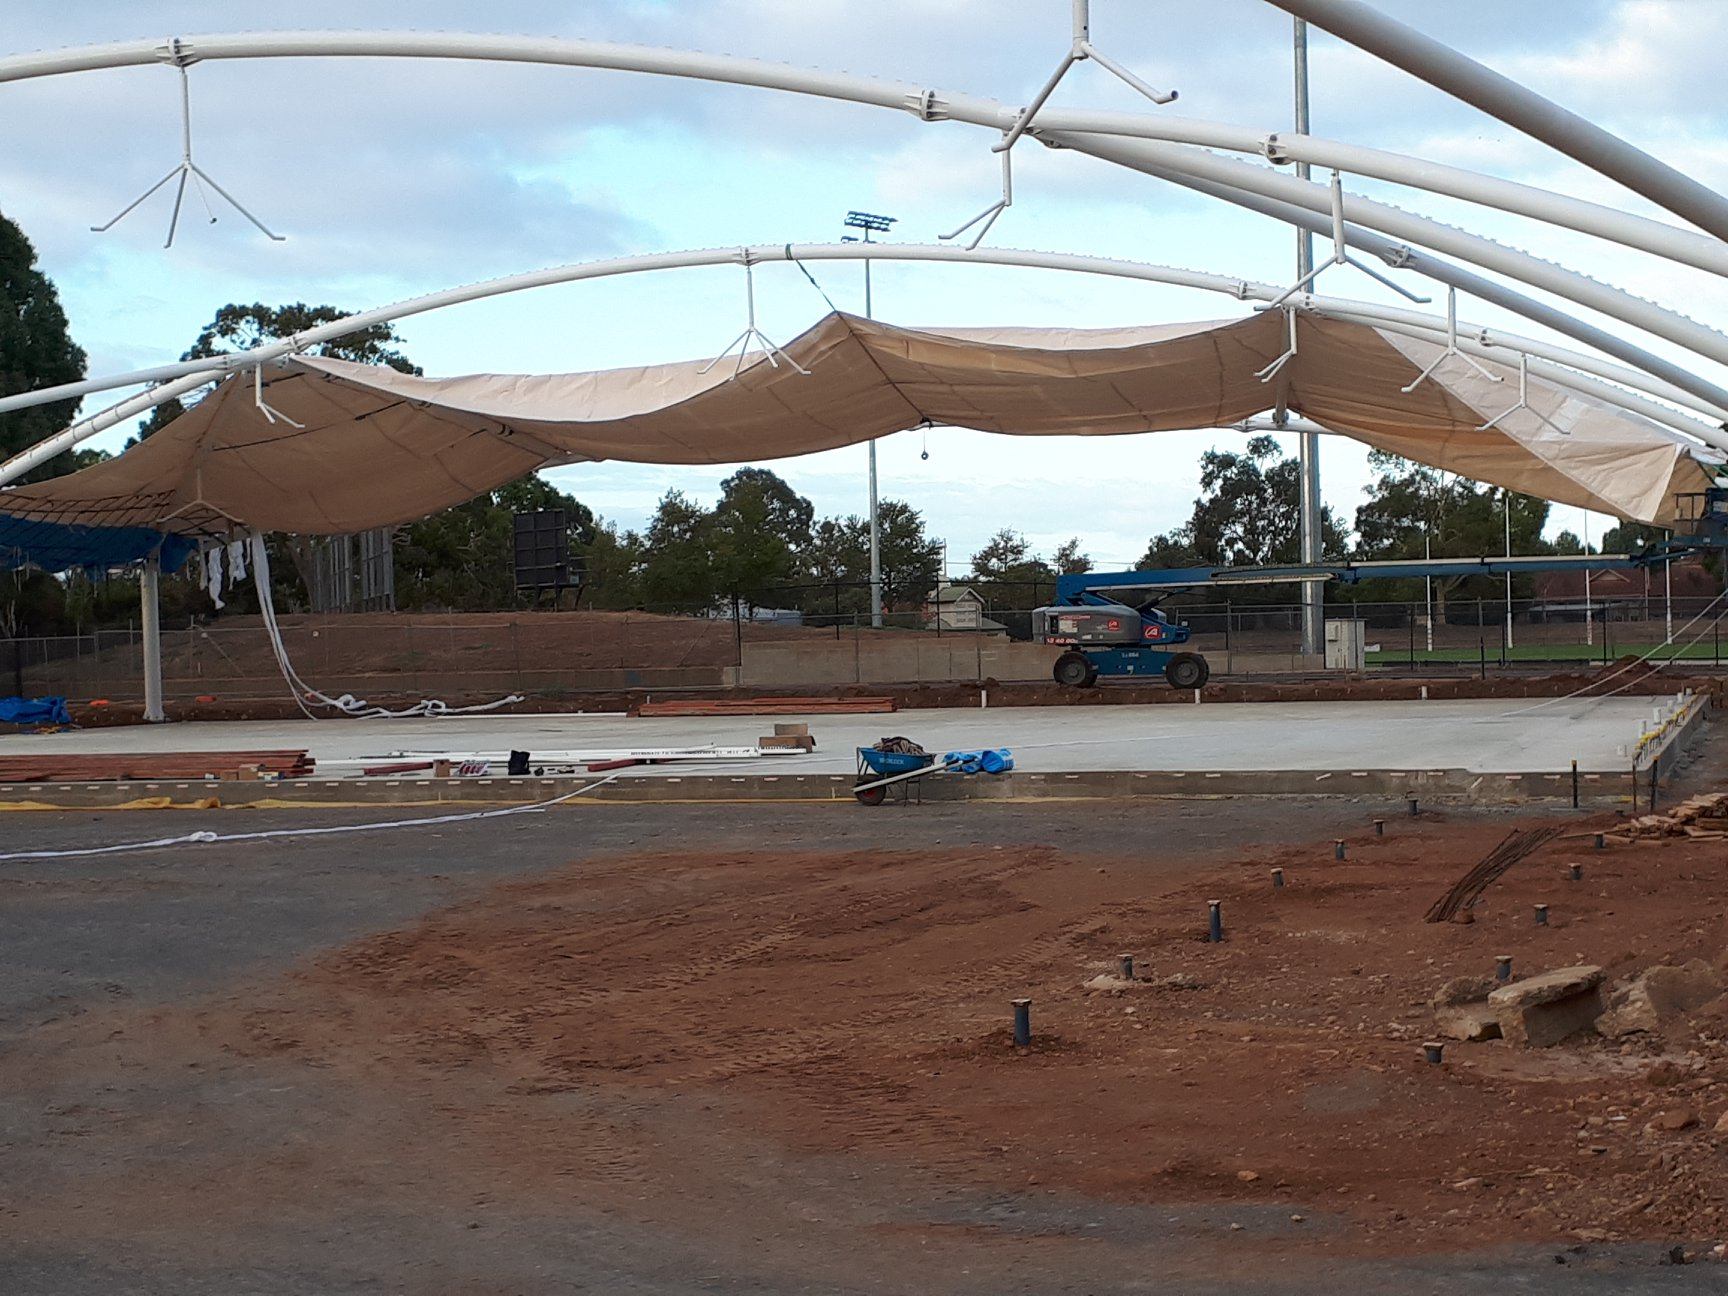 190214 Wind stops main fabric covering starts